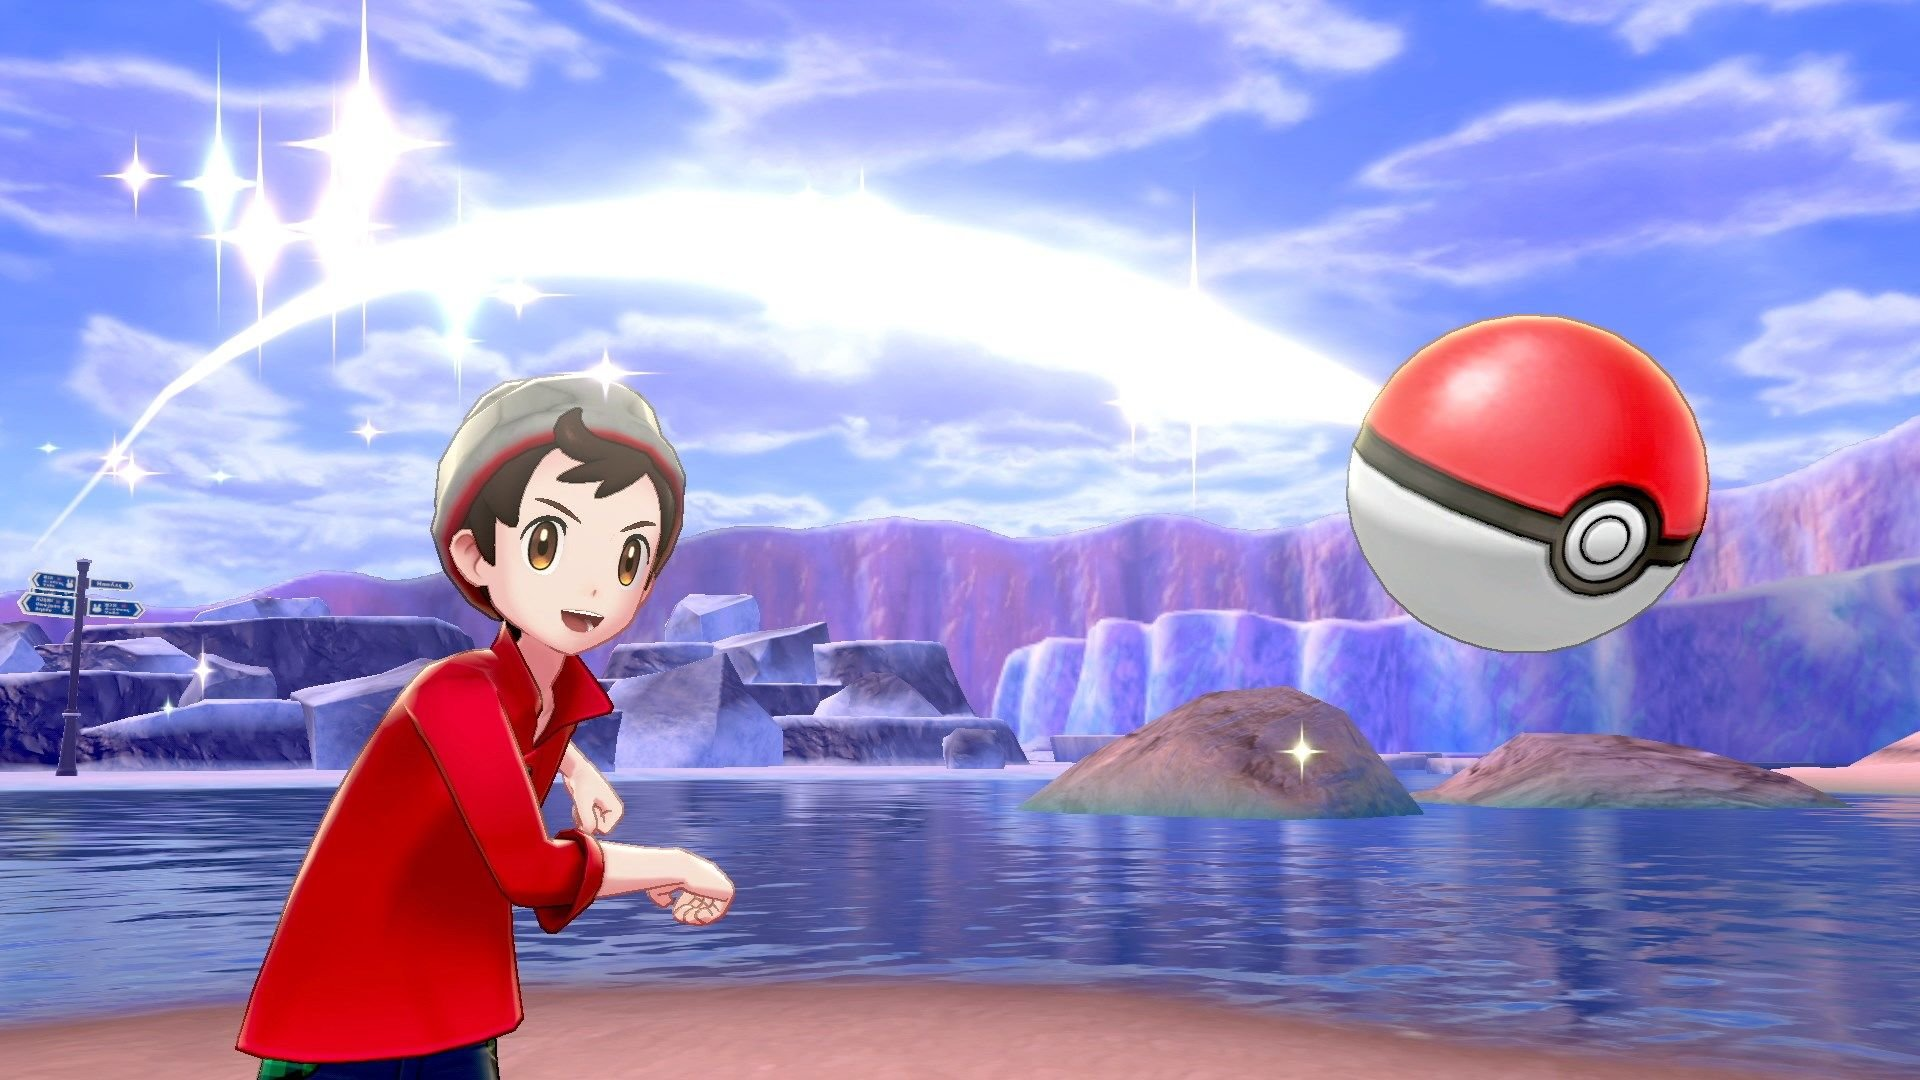 Main character of pokemon sword and shield throwing a pokeball.